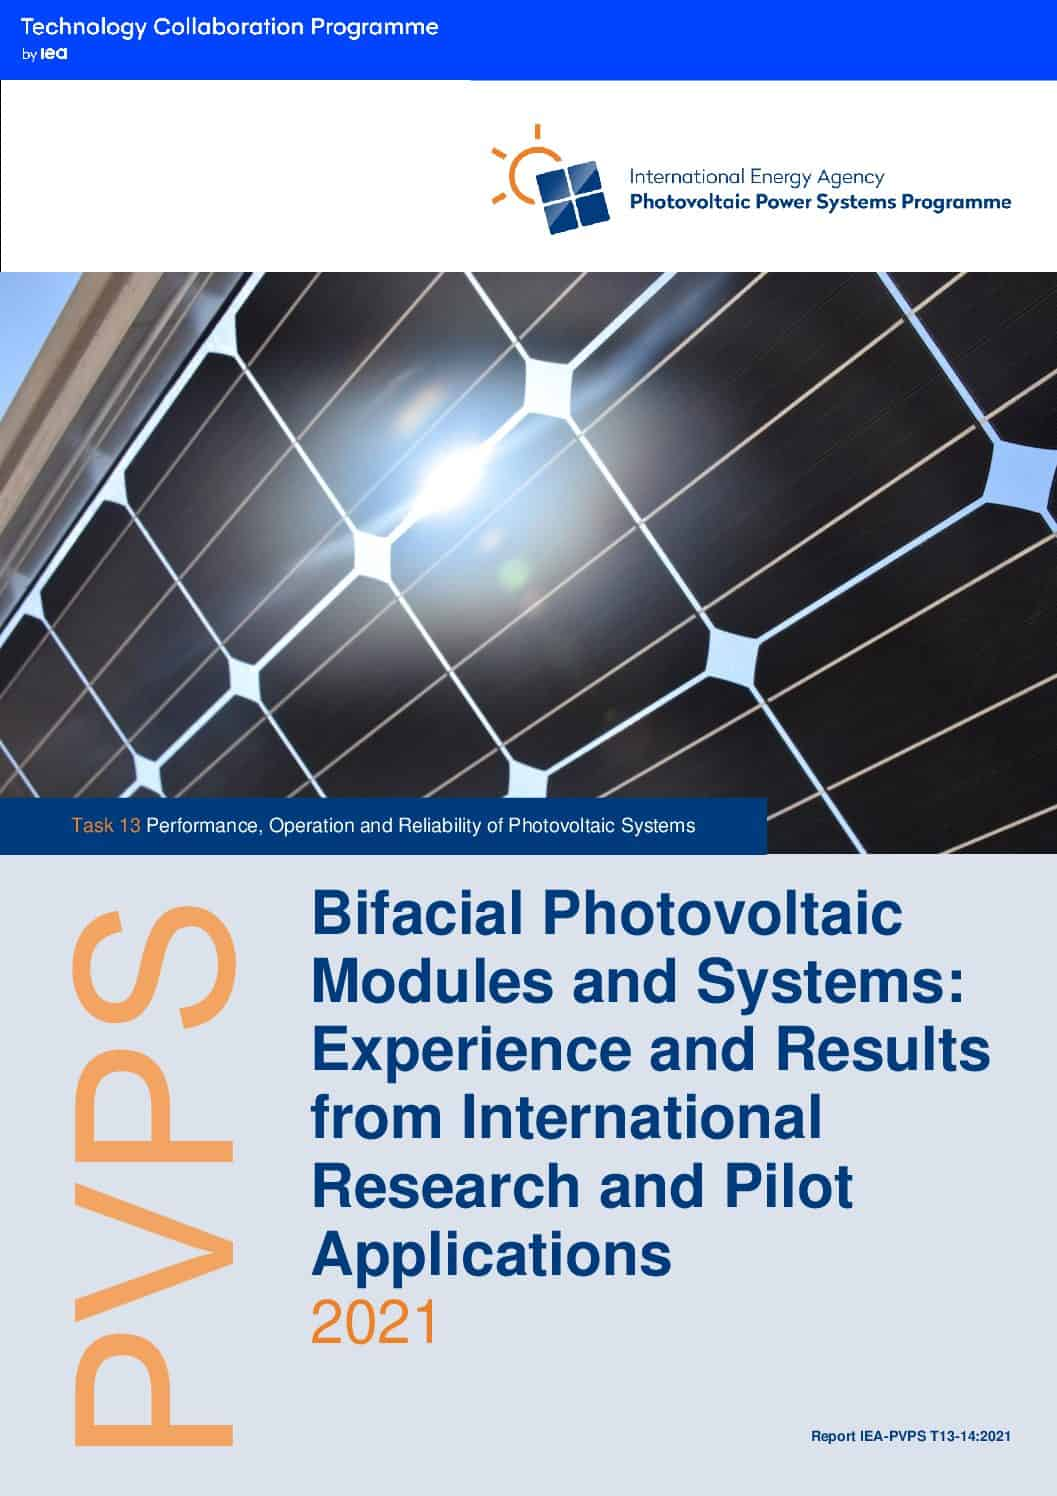 IEA-PVPS-T13-14_2021-Bifacial-Photovoltaic-Modules-and-Systems-report-pdf